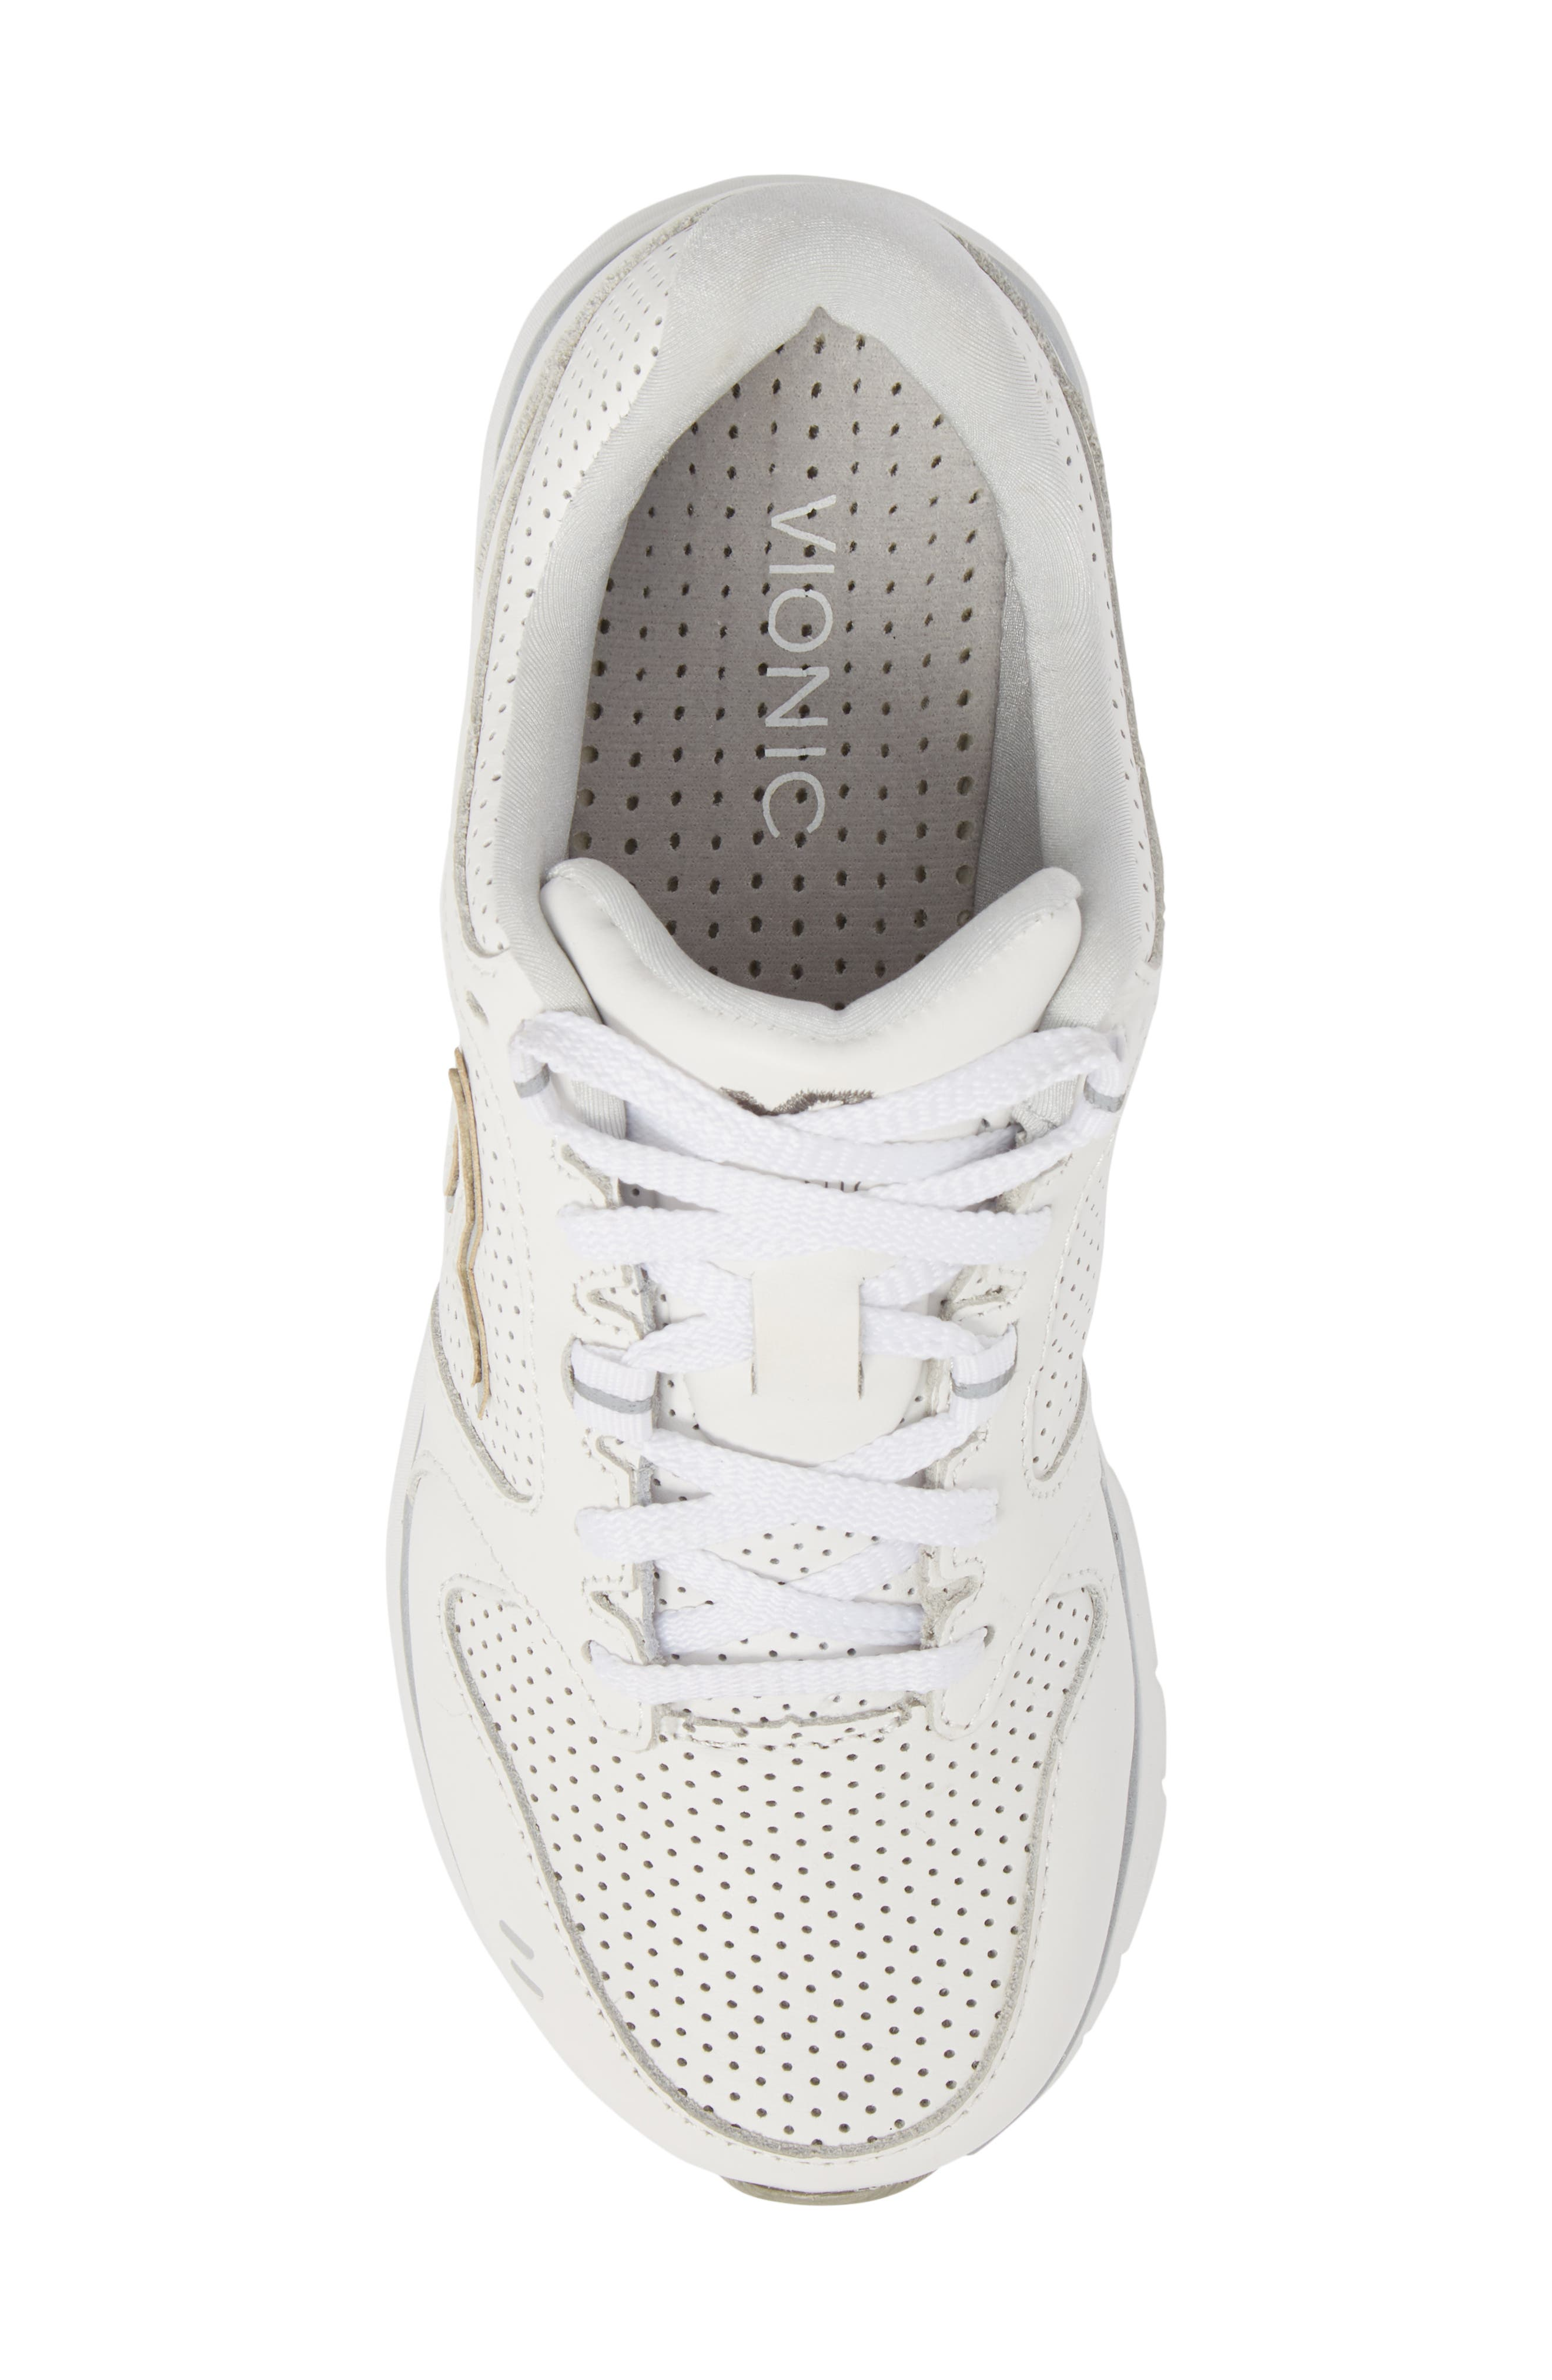 Thrill Sneaker,                             Alternate thumbnail 5, color,                             White Suede